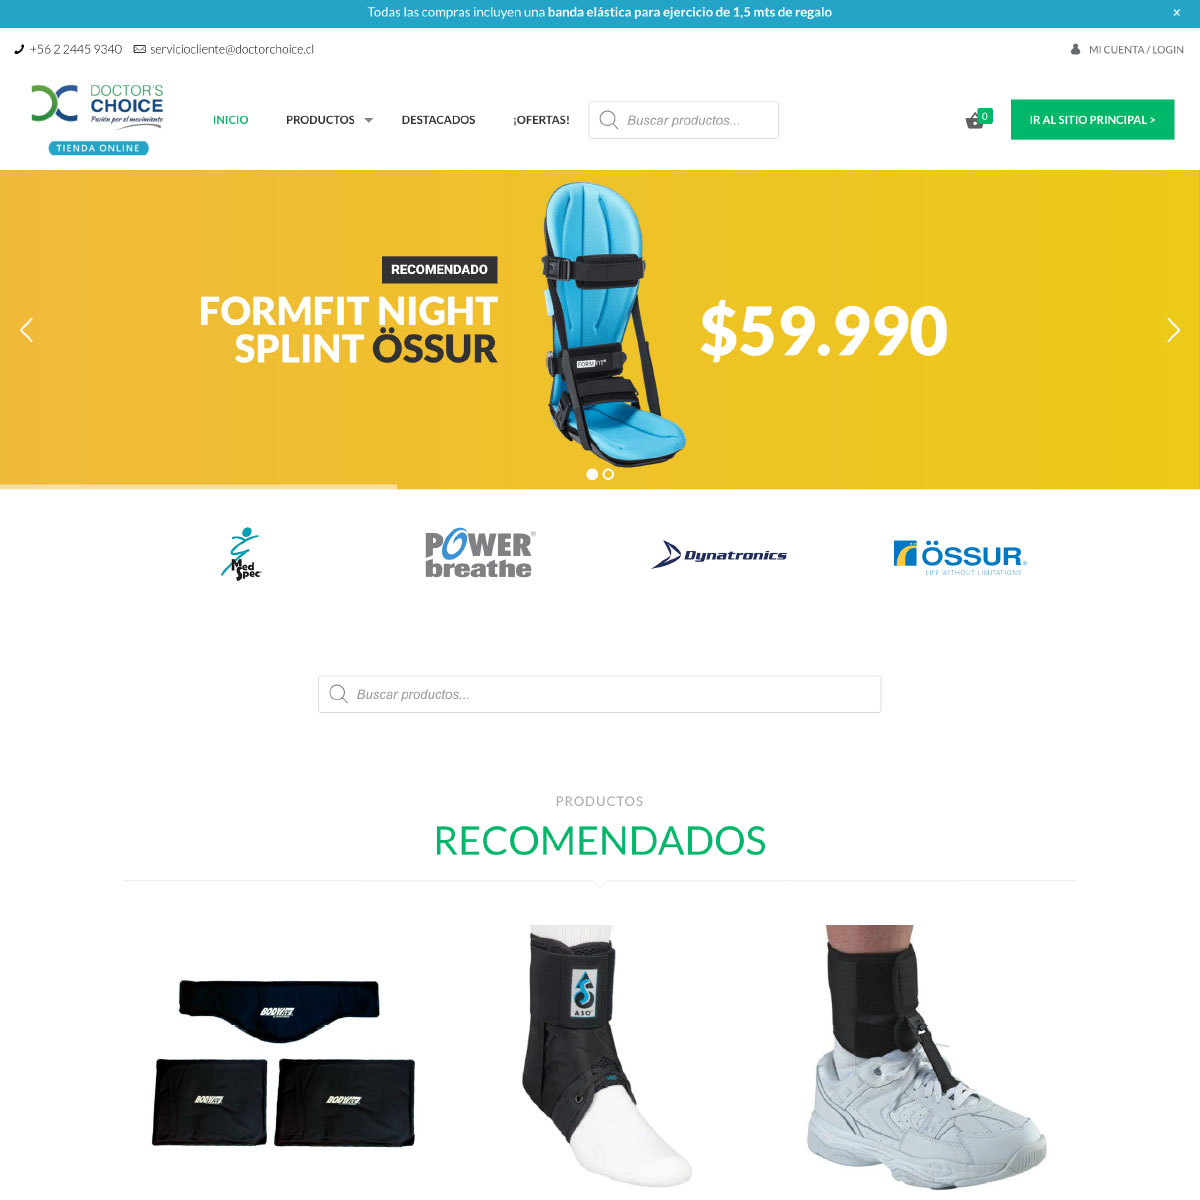 web-site-doctorchoice-ecommerce-woocommerce-chile